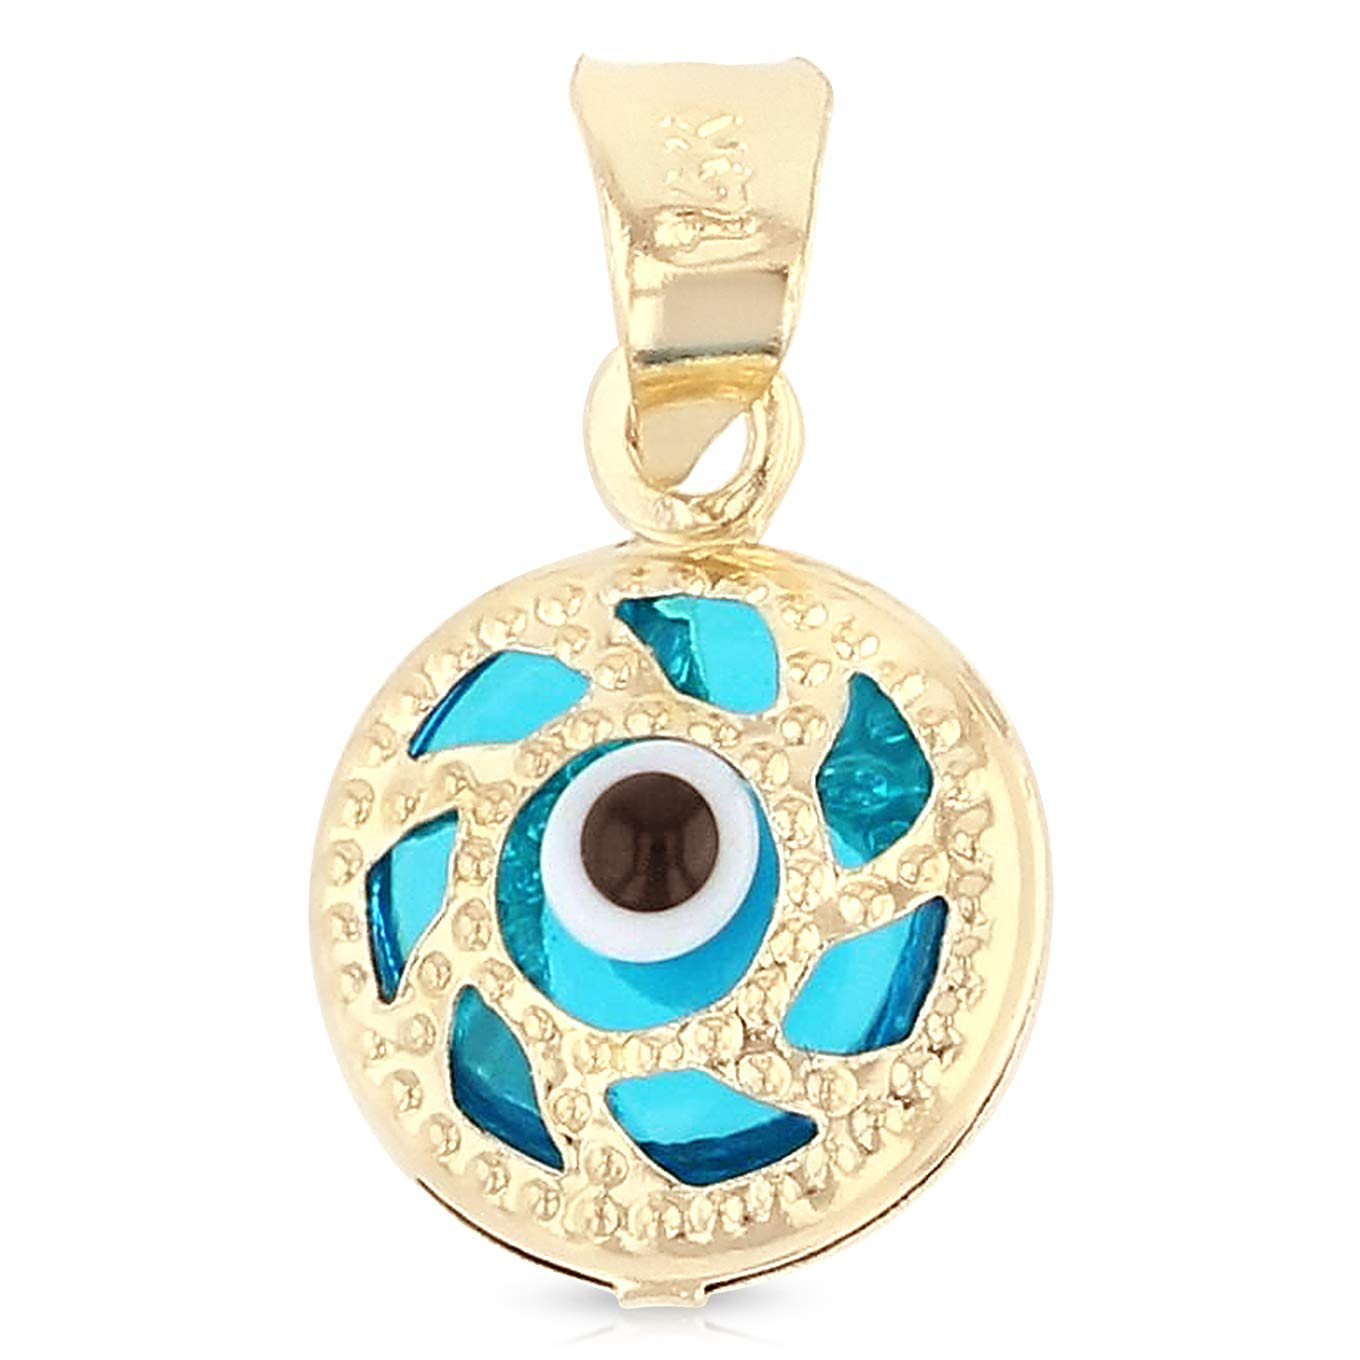 14K Yellow Gold Evil Eye Charm Pendant For Necklace or Chain